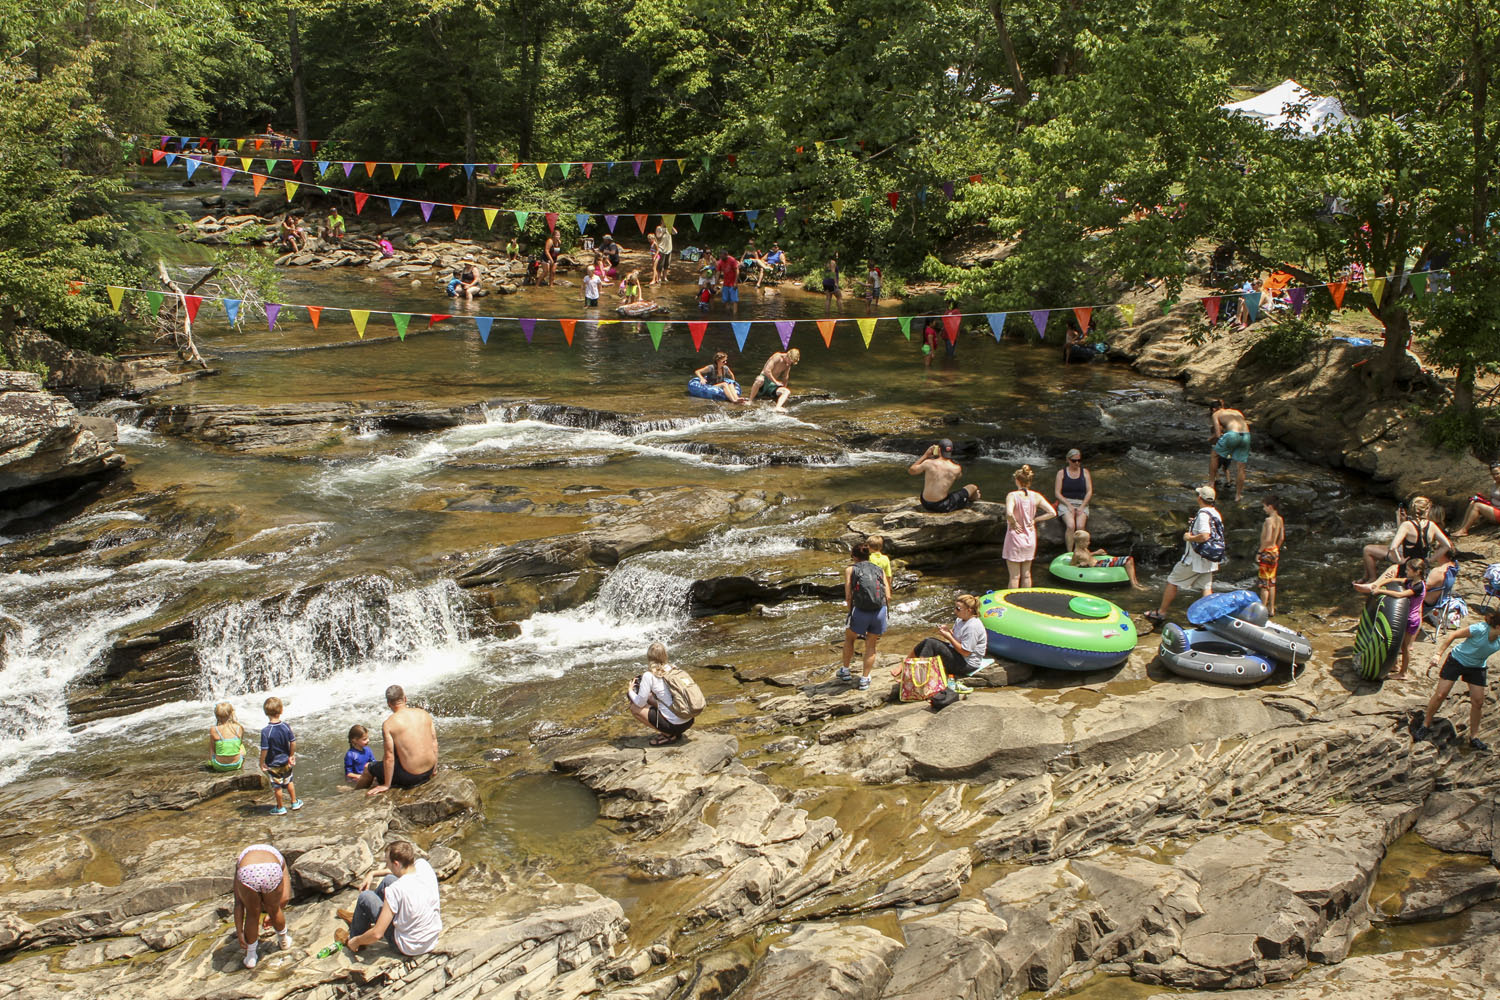 Darter Dash to raise funds for educational programs at TCNP